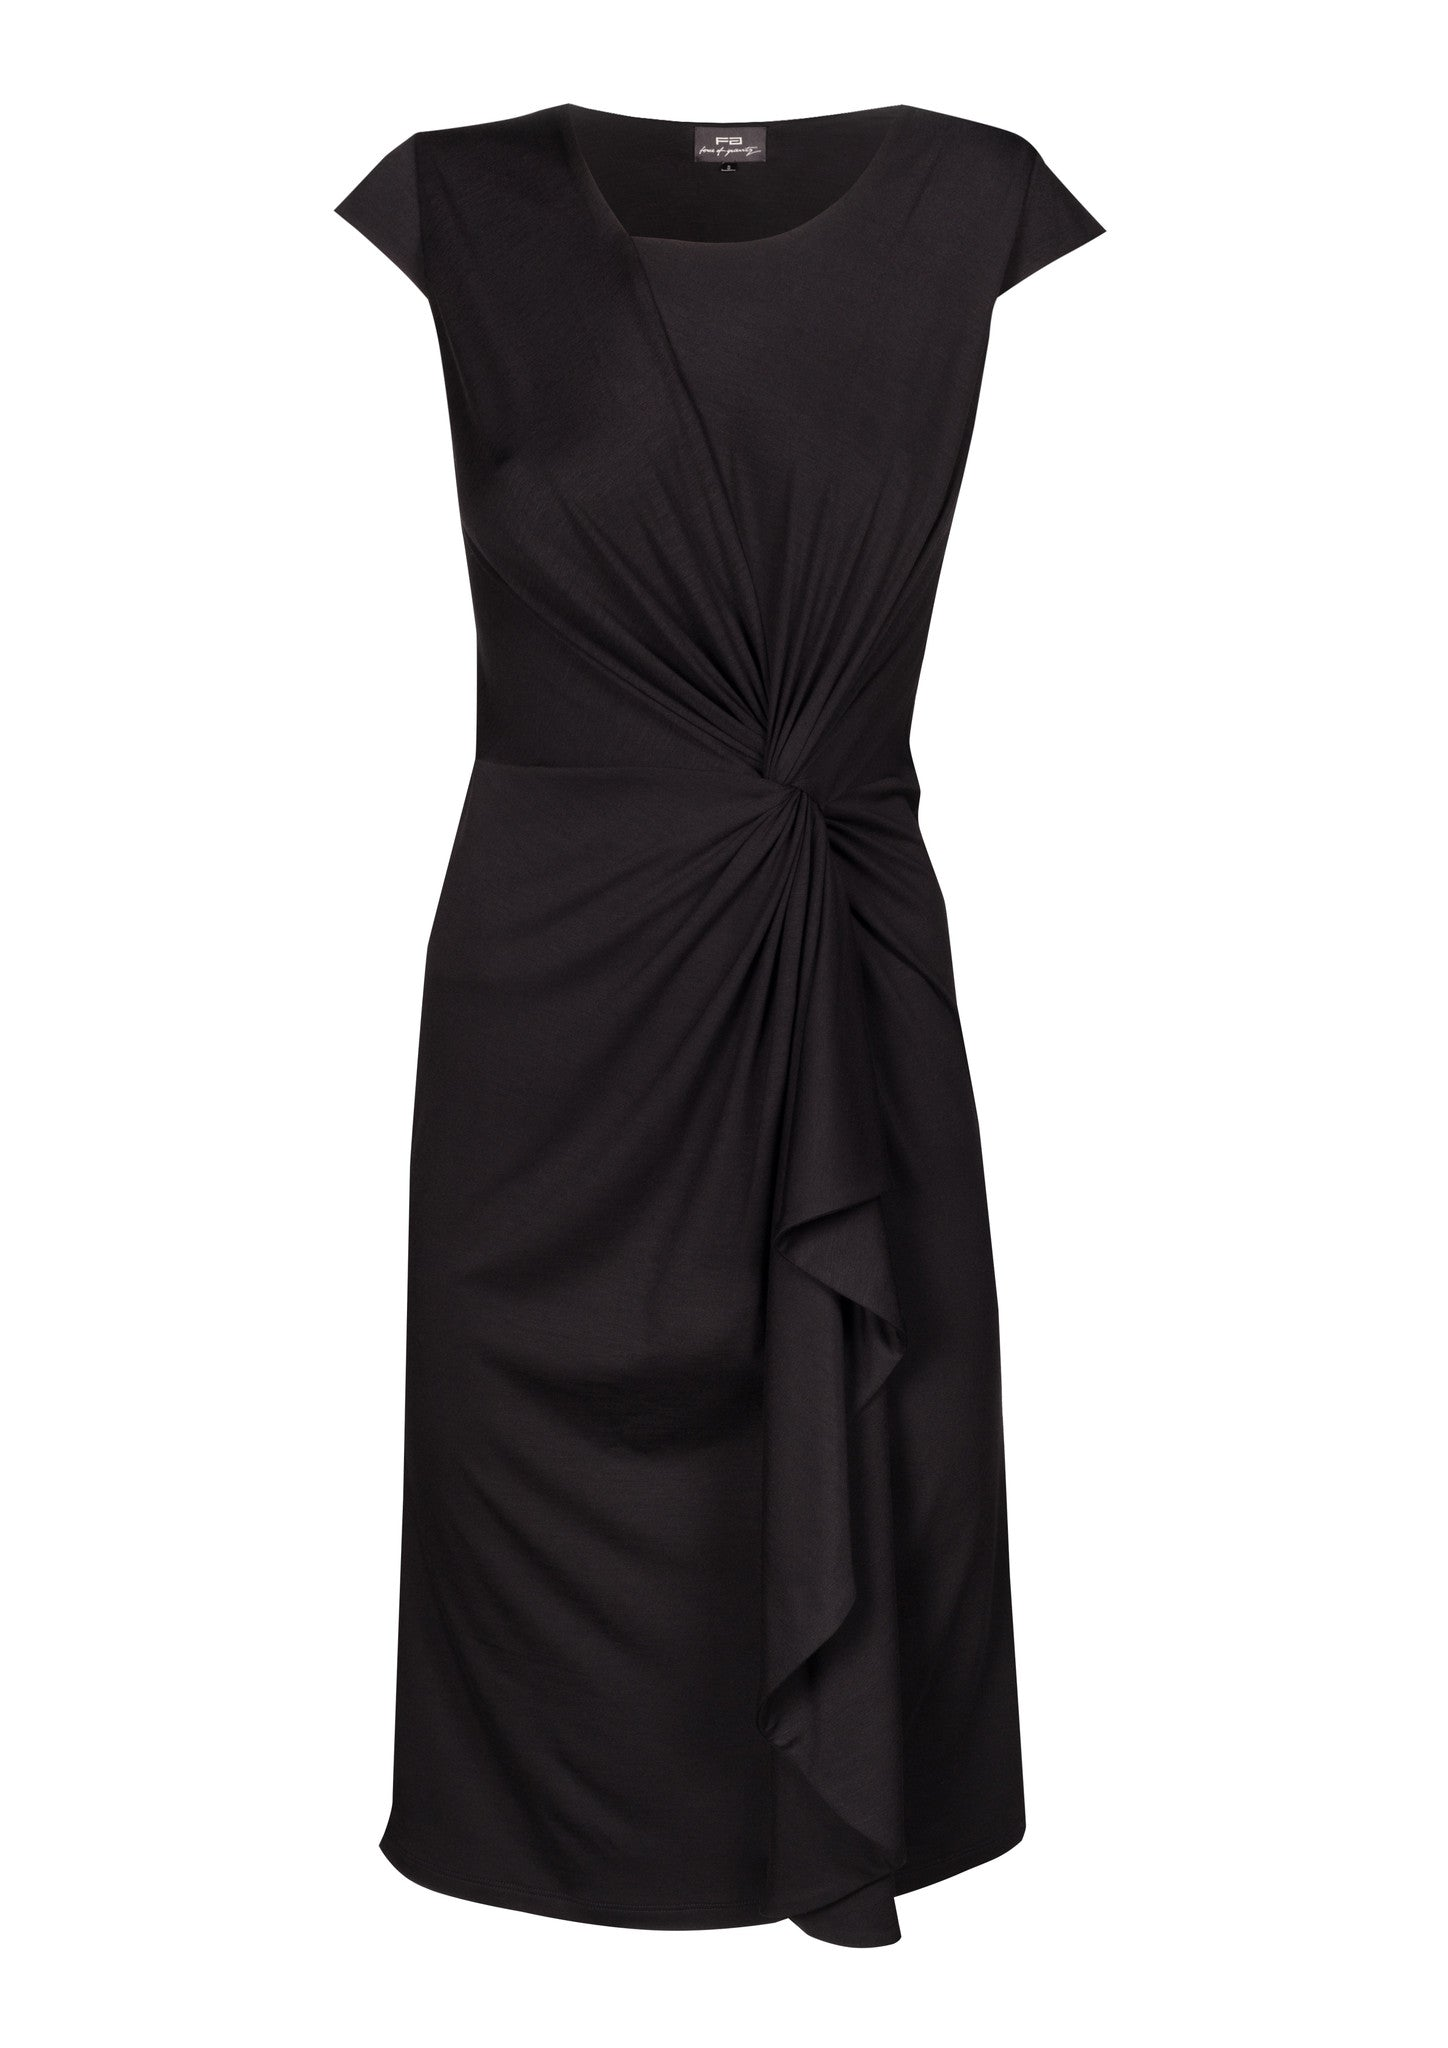 8659bd20d89 Gathered   twisted viscose jersey dress in black ...